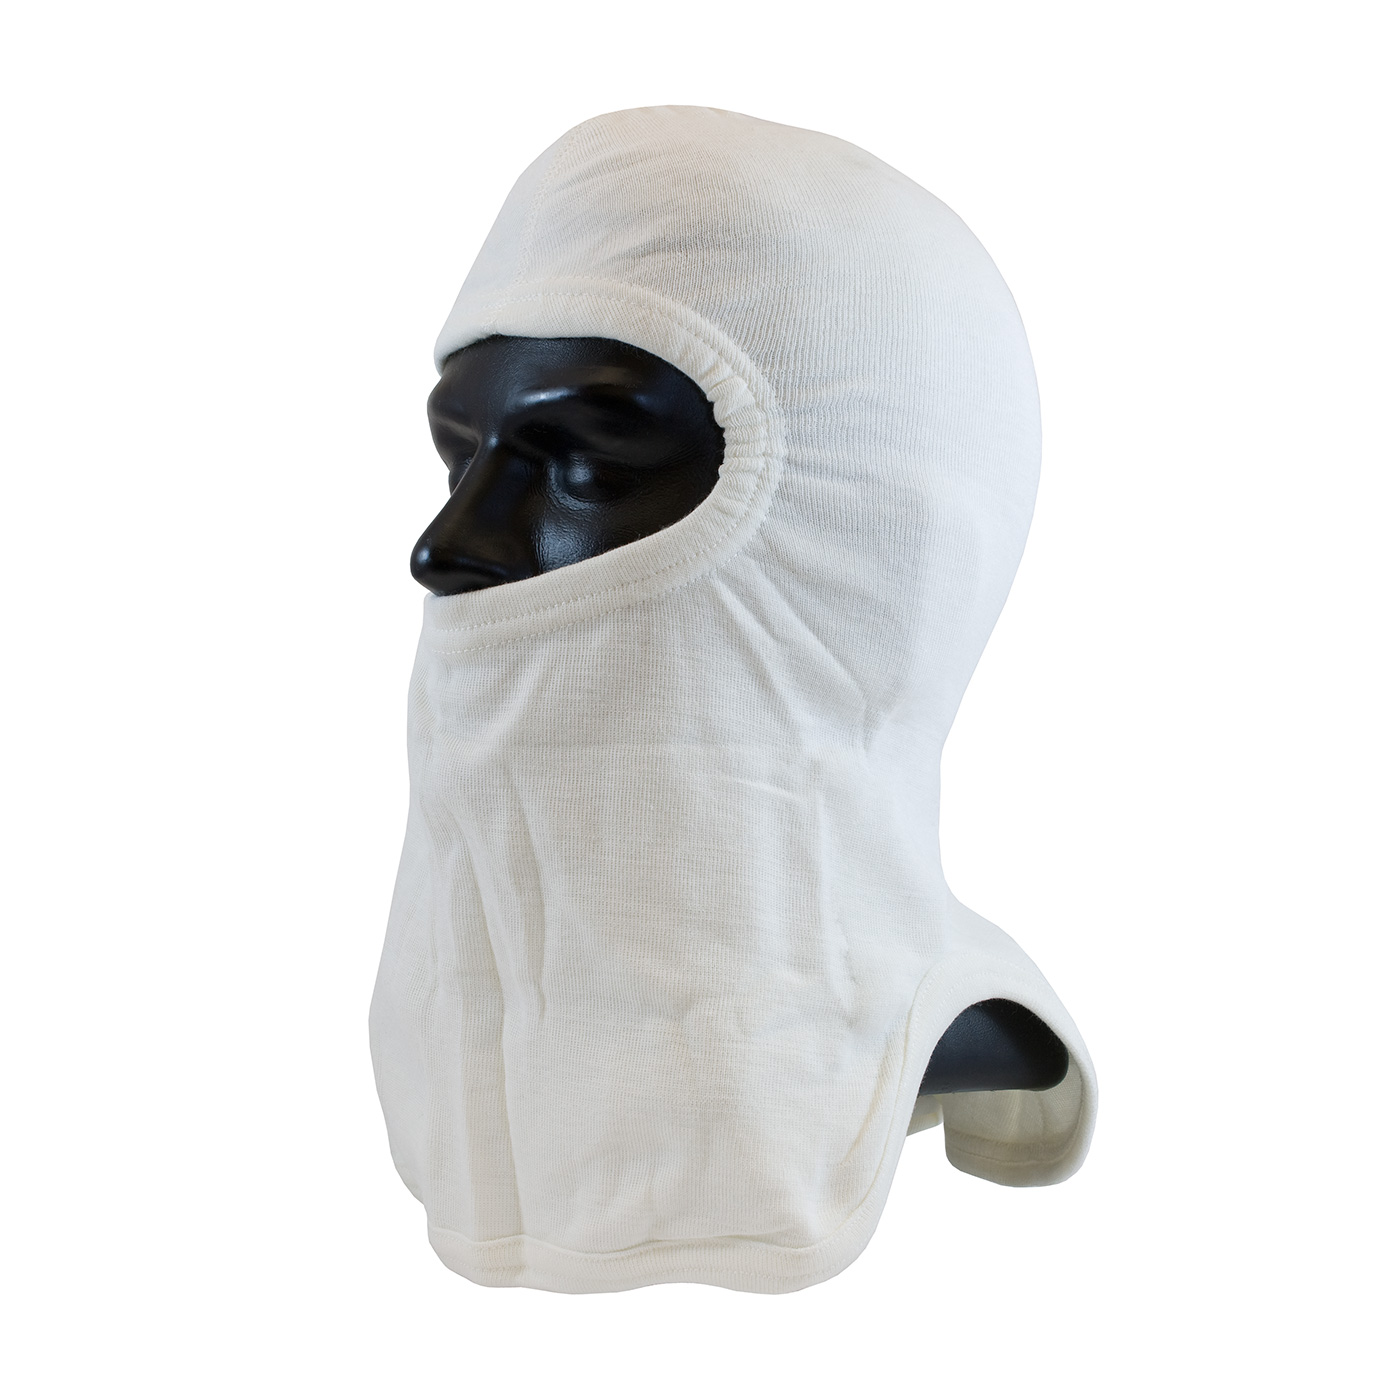 PIP® Tri-Cut White Nomex® / Lenzing FR Hood with Tri-Cut Design - Full Face #906-2080NOL7